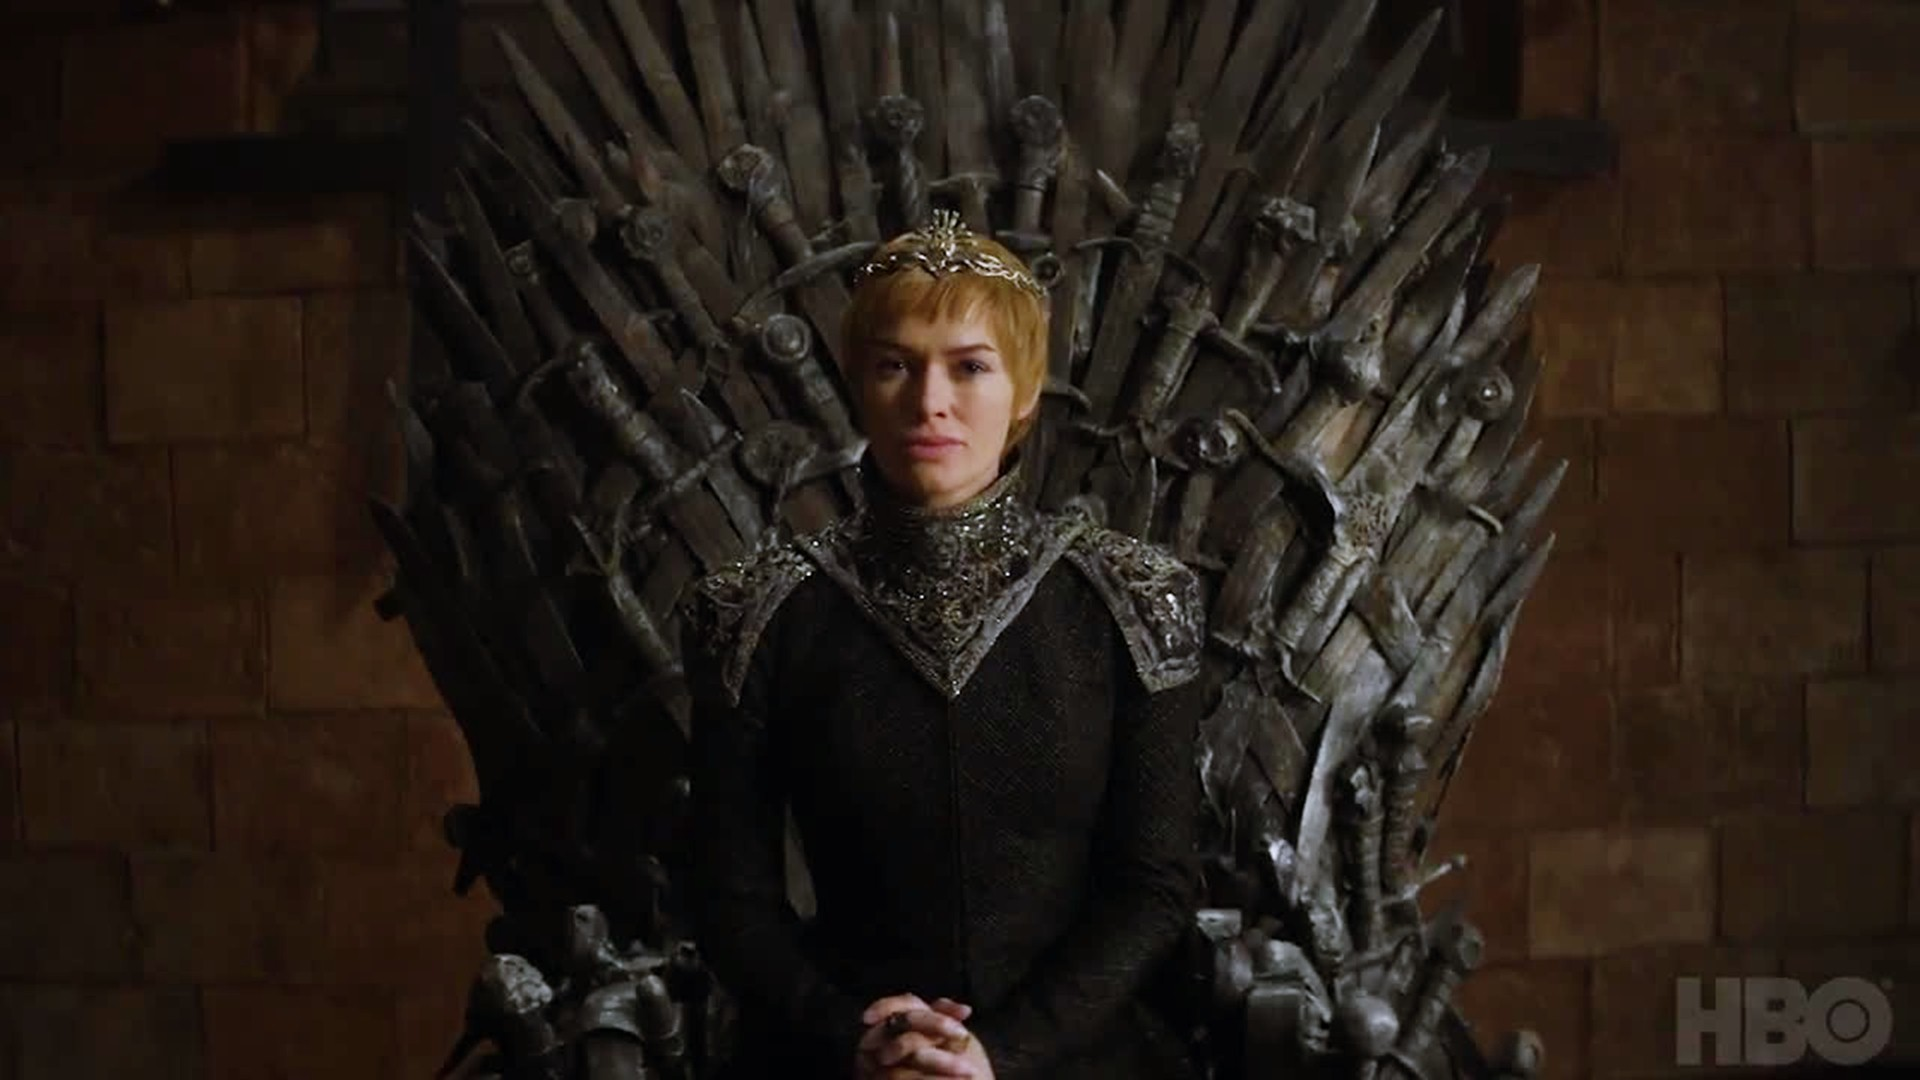 1920x1080 Cersei Lannister Game Of Thrones Season 7 Sitting On Throne Wallpaper 14761